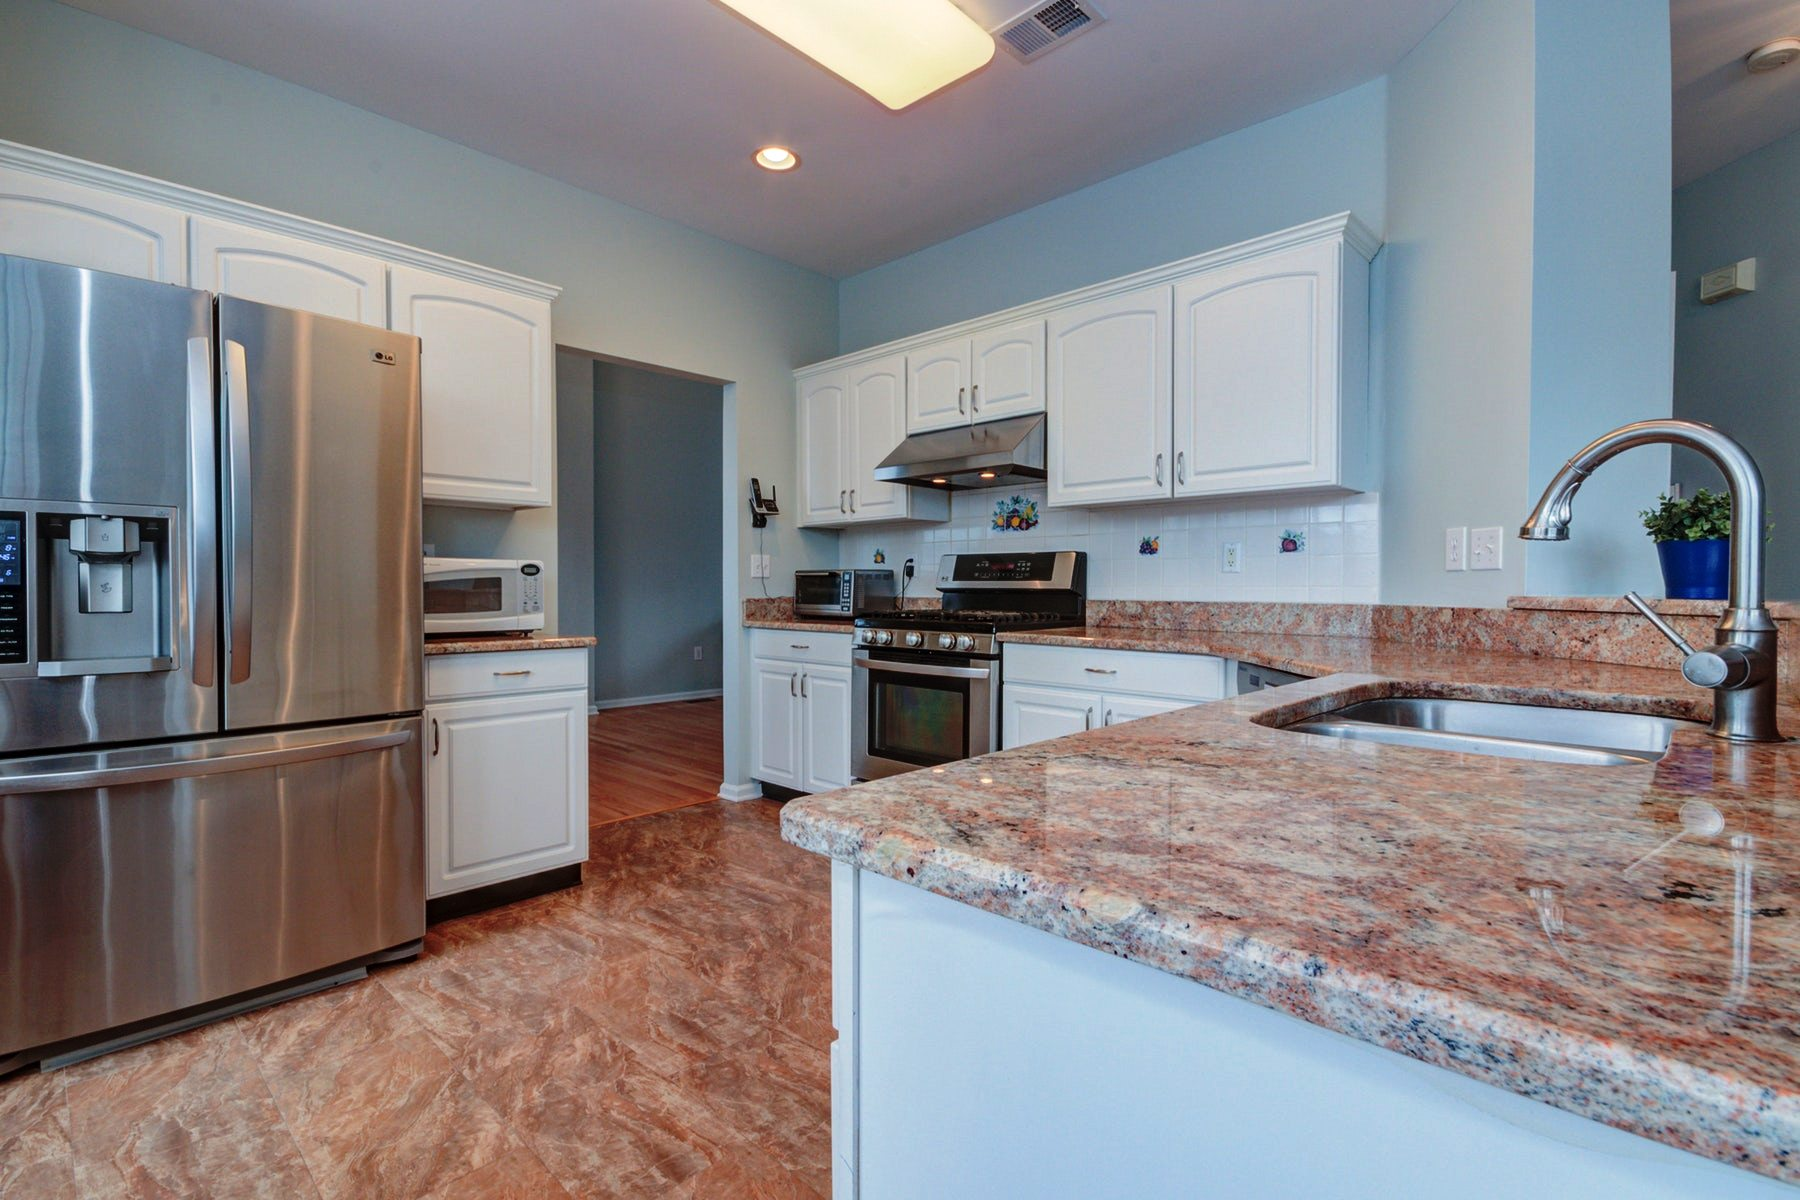 Single Family Home for Sale at LIVE Boundless 39 Waterford Ave, Marlboro, New Jersey 07751 United States